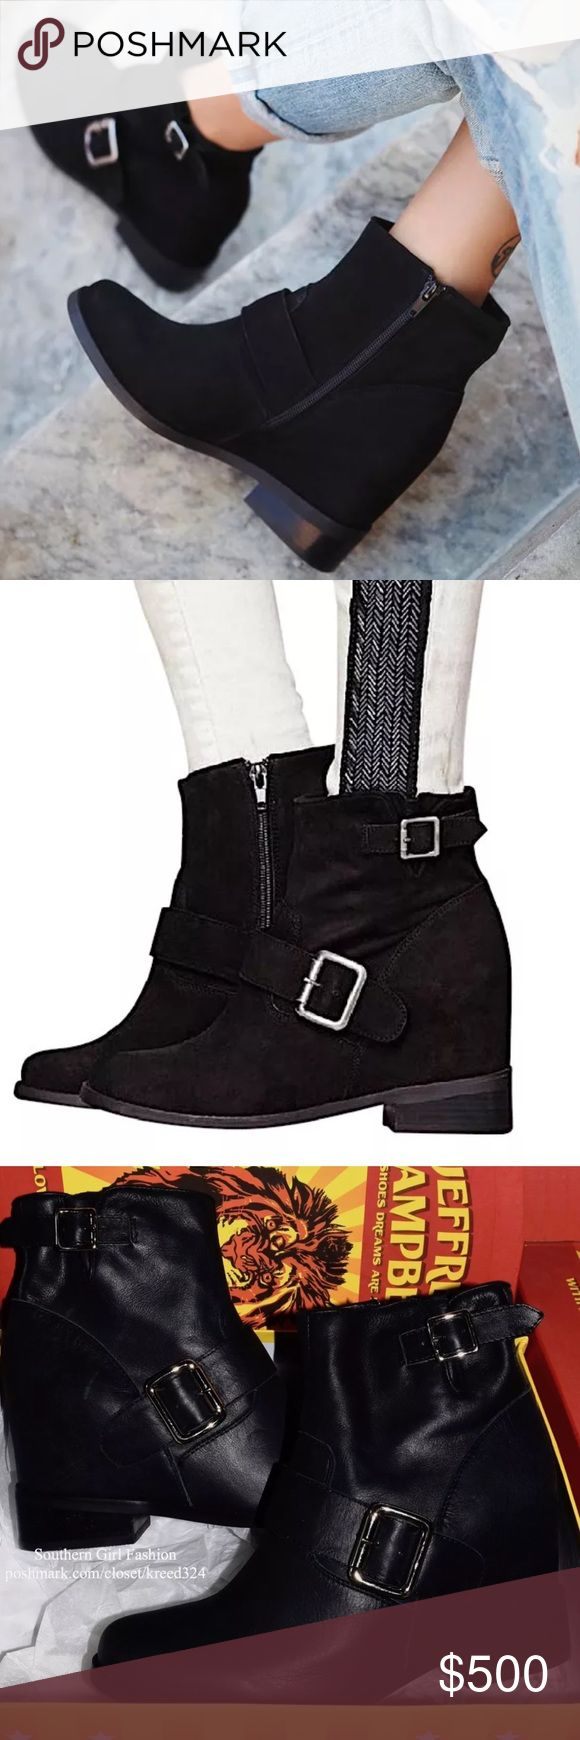 FREE PEOPLE Ankle Boots Bohemian Wedged Heel Shoes Available Sizes: 10, 11 .   New With Box.  $238 MSRP + Tax.  • Beautiful black leather ankle booties featuring silver buckles & a generous hidden wedge. • Distressing throughout with side zip closure. • Comfortable lined interior & rounded toe. • Note: runs approx. 1/2 size small. • By Jeffrey Campbell for Free People.  {Southern Girl Fashion - Closet Policy}  ✔️ Same-Business-Day Shipping (10am CT) ✔️ Reasonable best offer considered when…